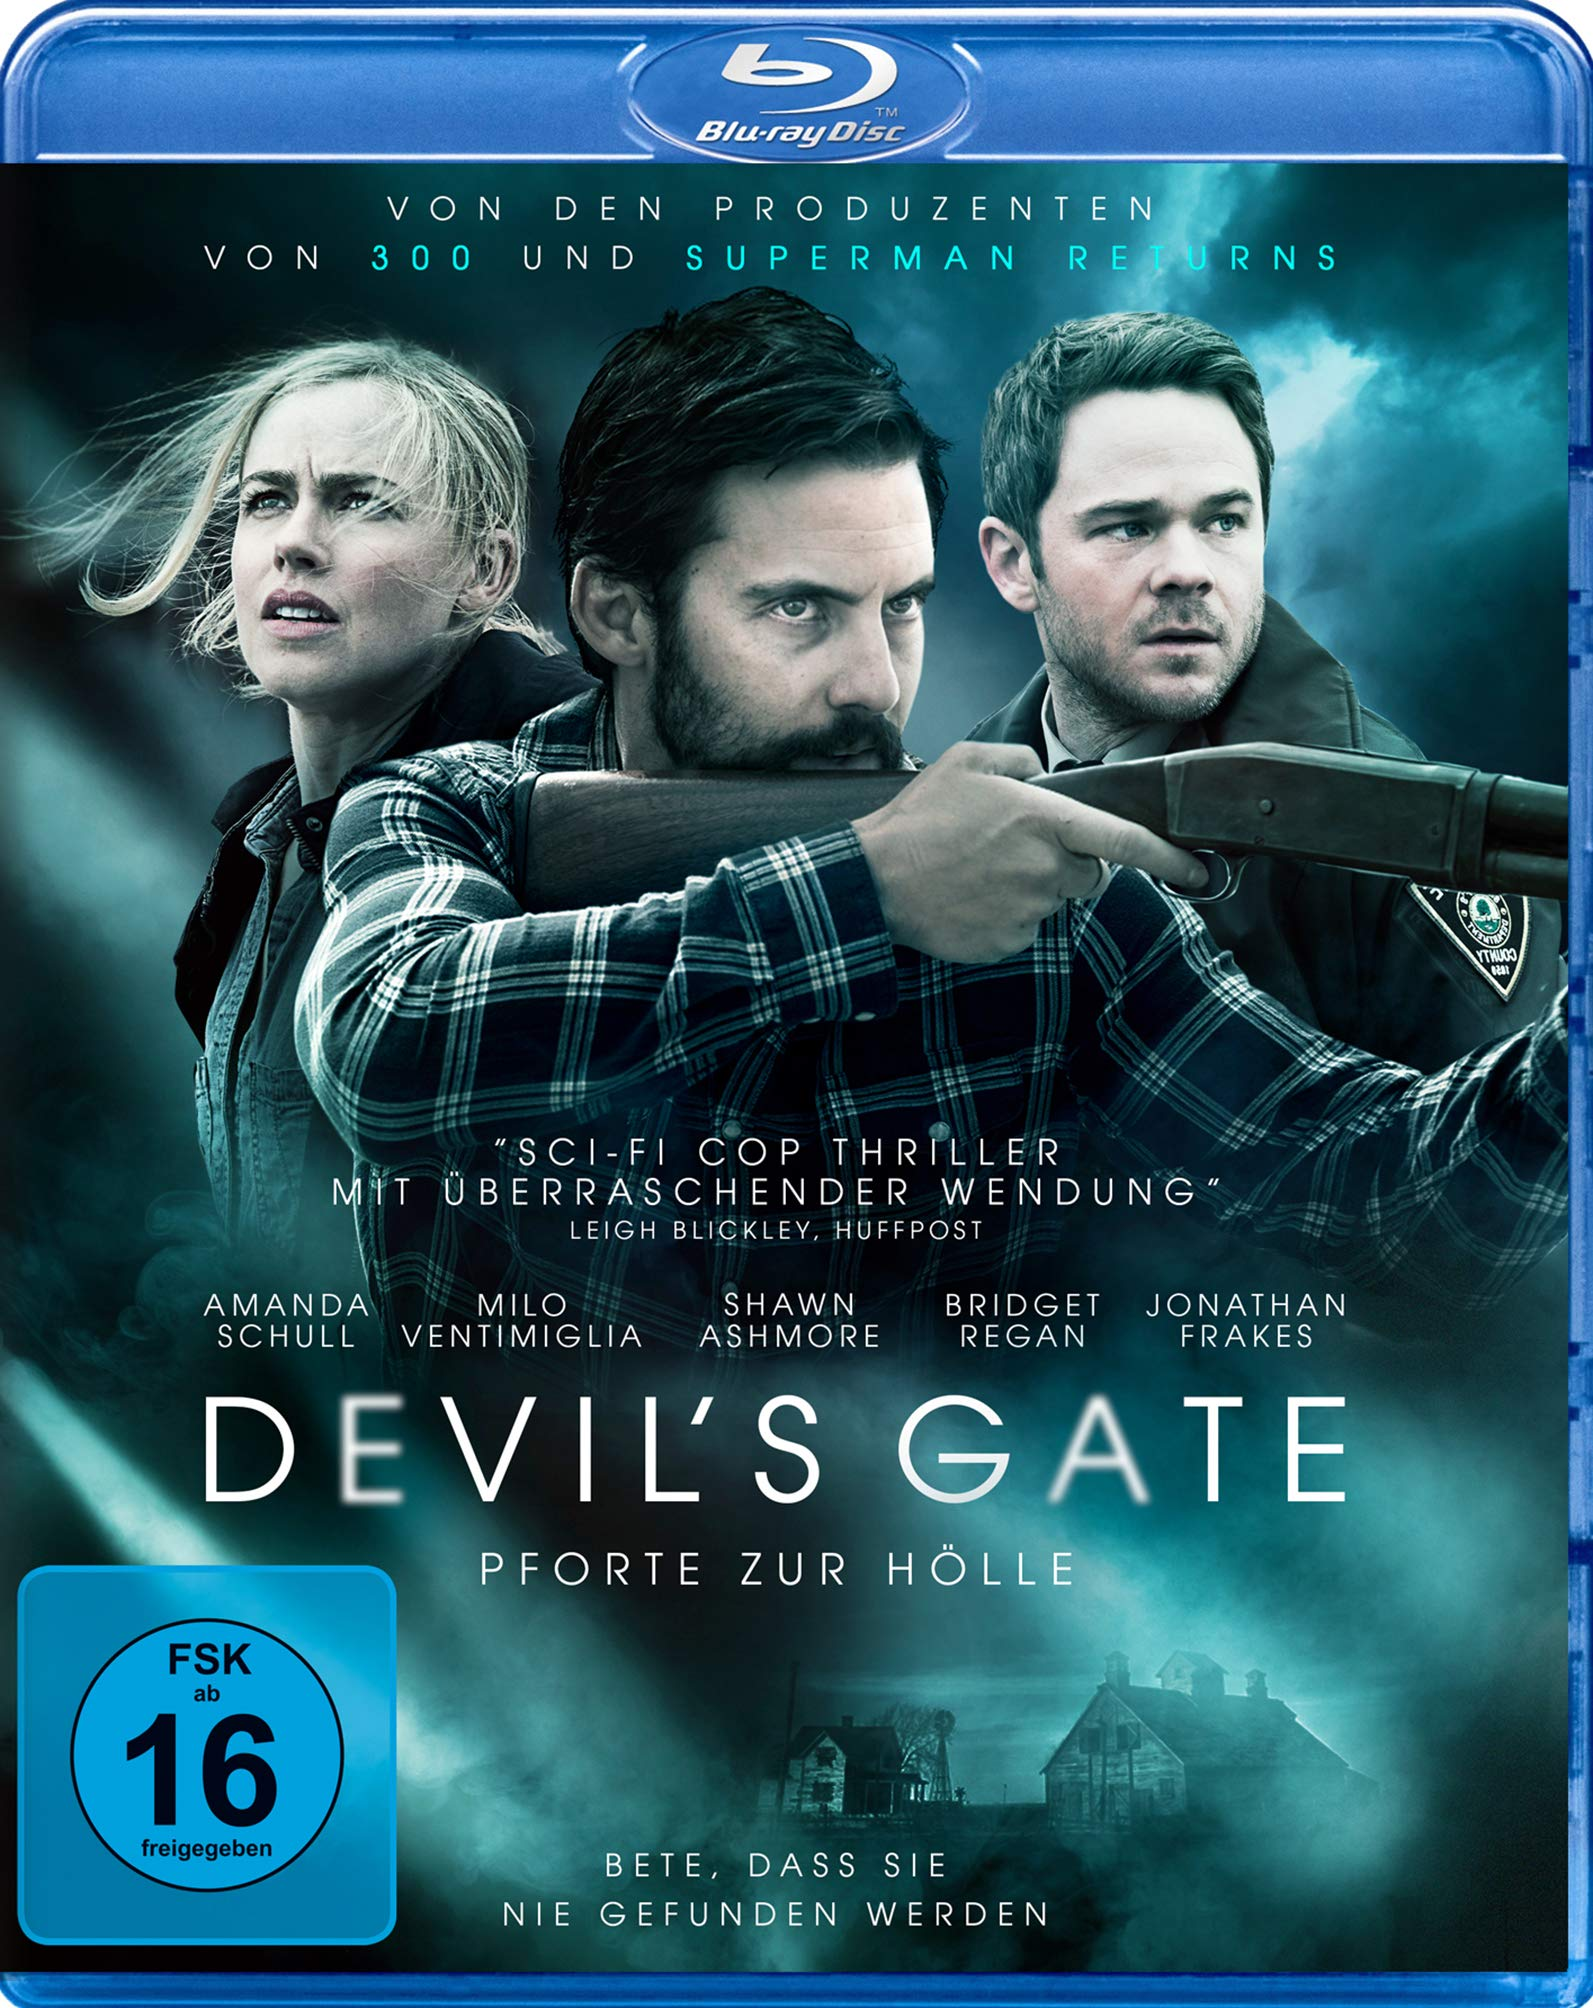 download Devils.Gate.Pforte.zur.Hoelle.German.2017.AC3.BDRiP.x264-XF